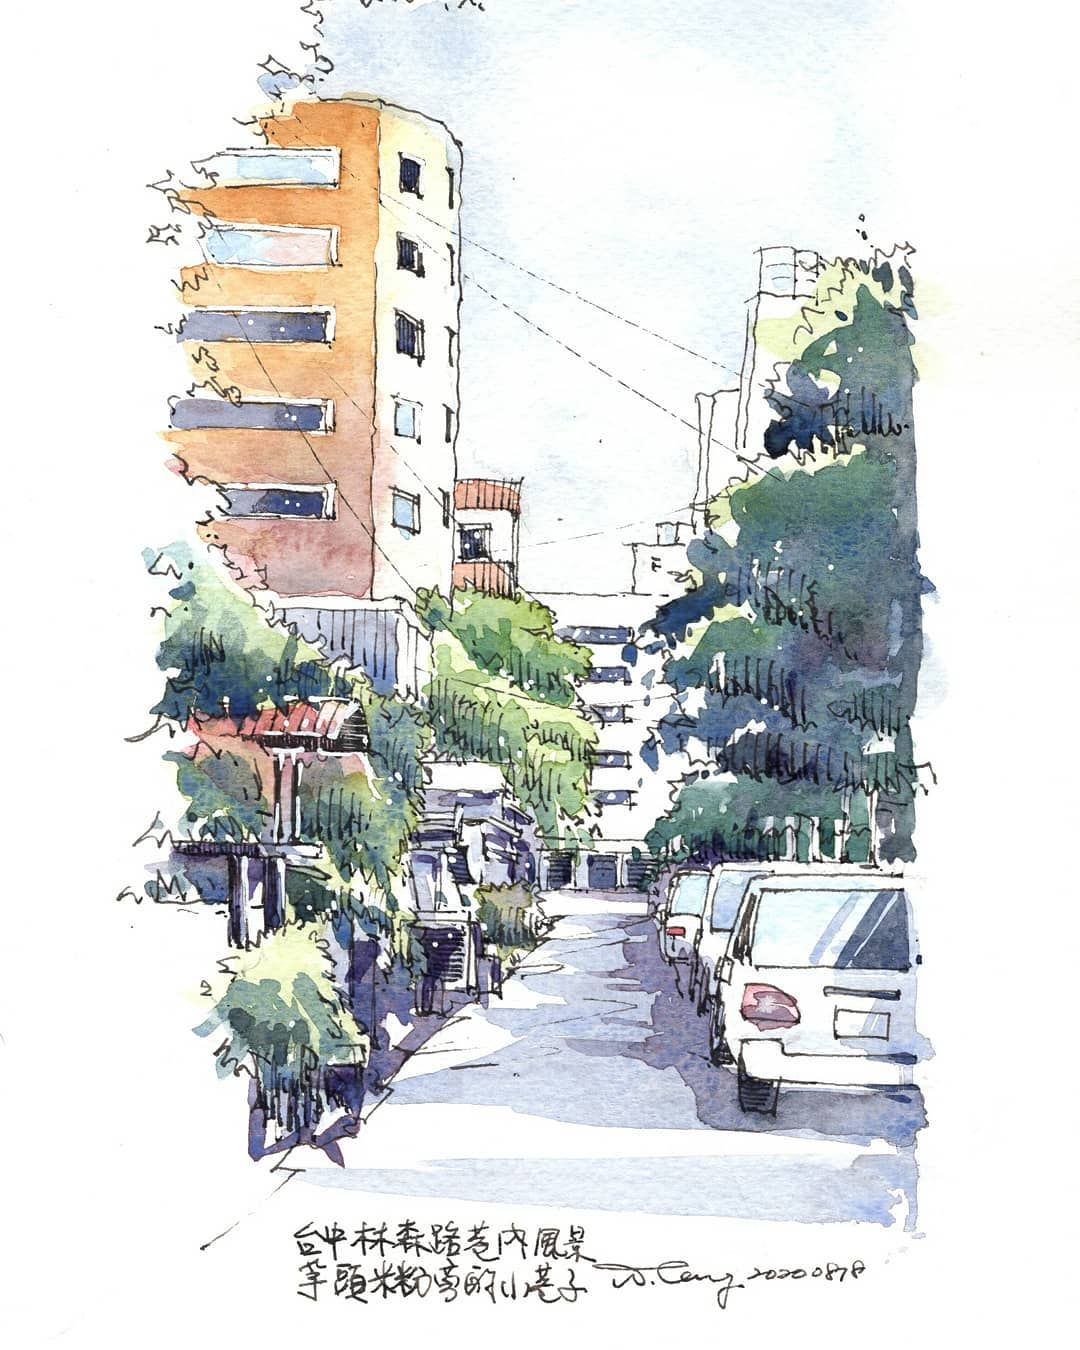 "Wade Tang 阿德 on Instagram: ""(214/365)20200828. Walk in a small alley in Taichung. . #365project #urbansketching #urbansketchers #architecturesketch #archisketch…"""